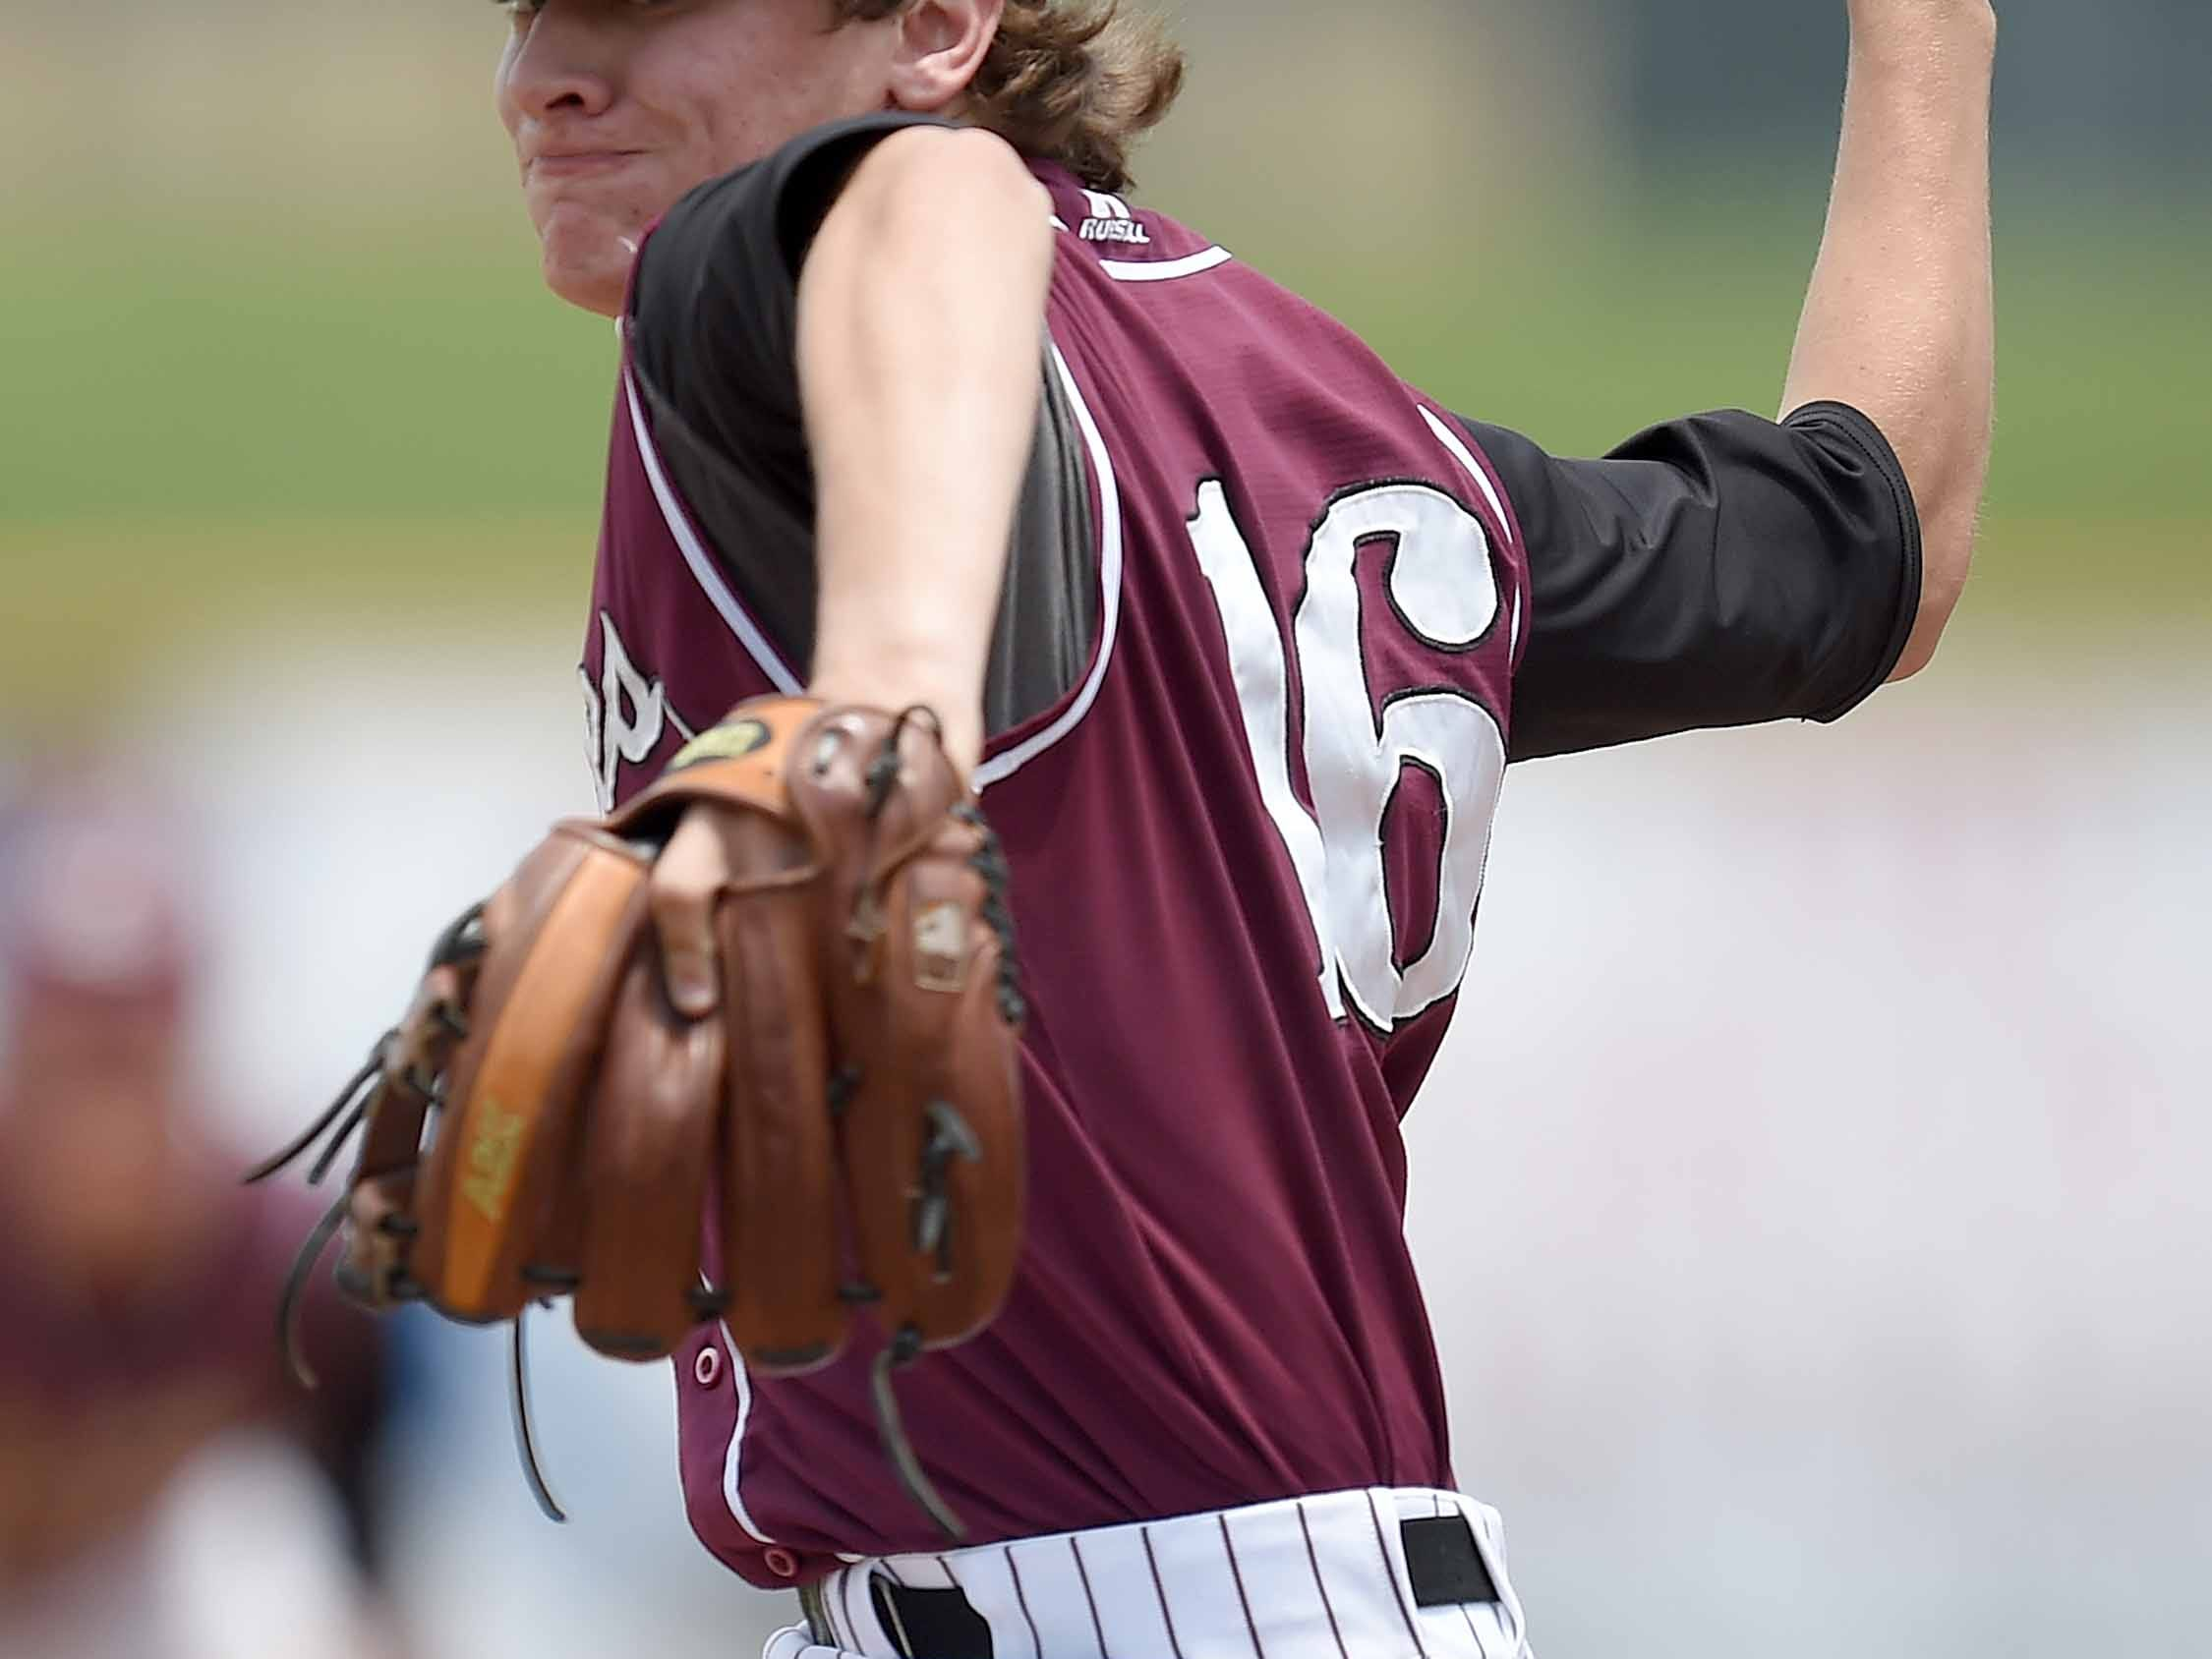 East Webster starting pitcher Cody Boland rears back to deliver a pitch to a Taylorsville hitter on Saturday, May 23, the final day of the 2015 MHSAA Baseball State Championships at Trustmark Park in Pearl, Miss.